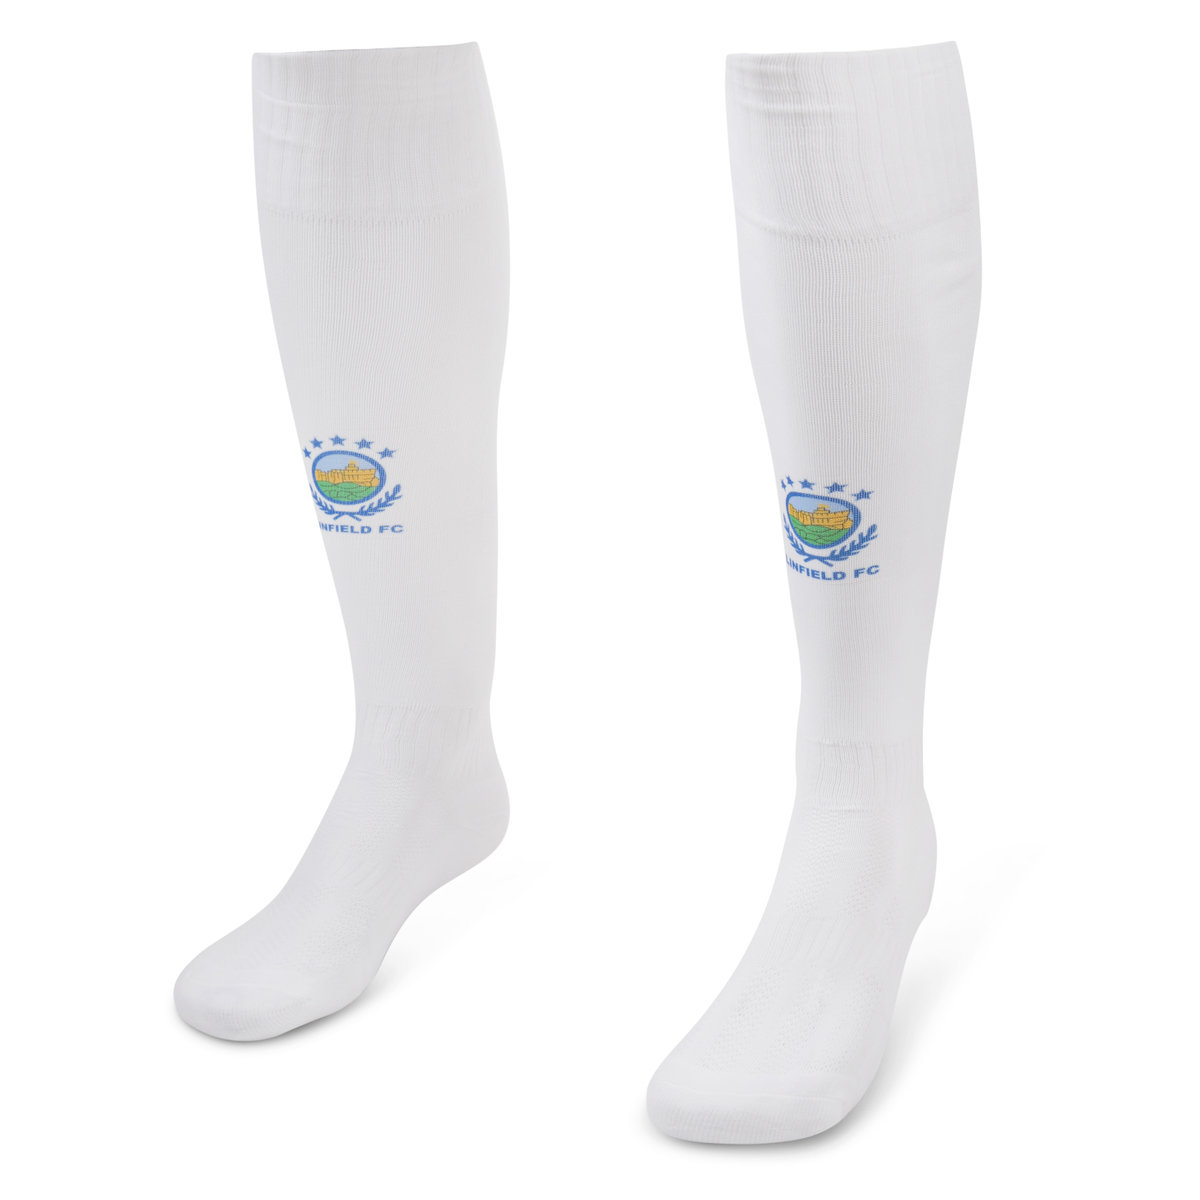 LINFIELD FC 19/20 AWAY SOCKS